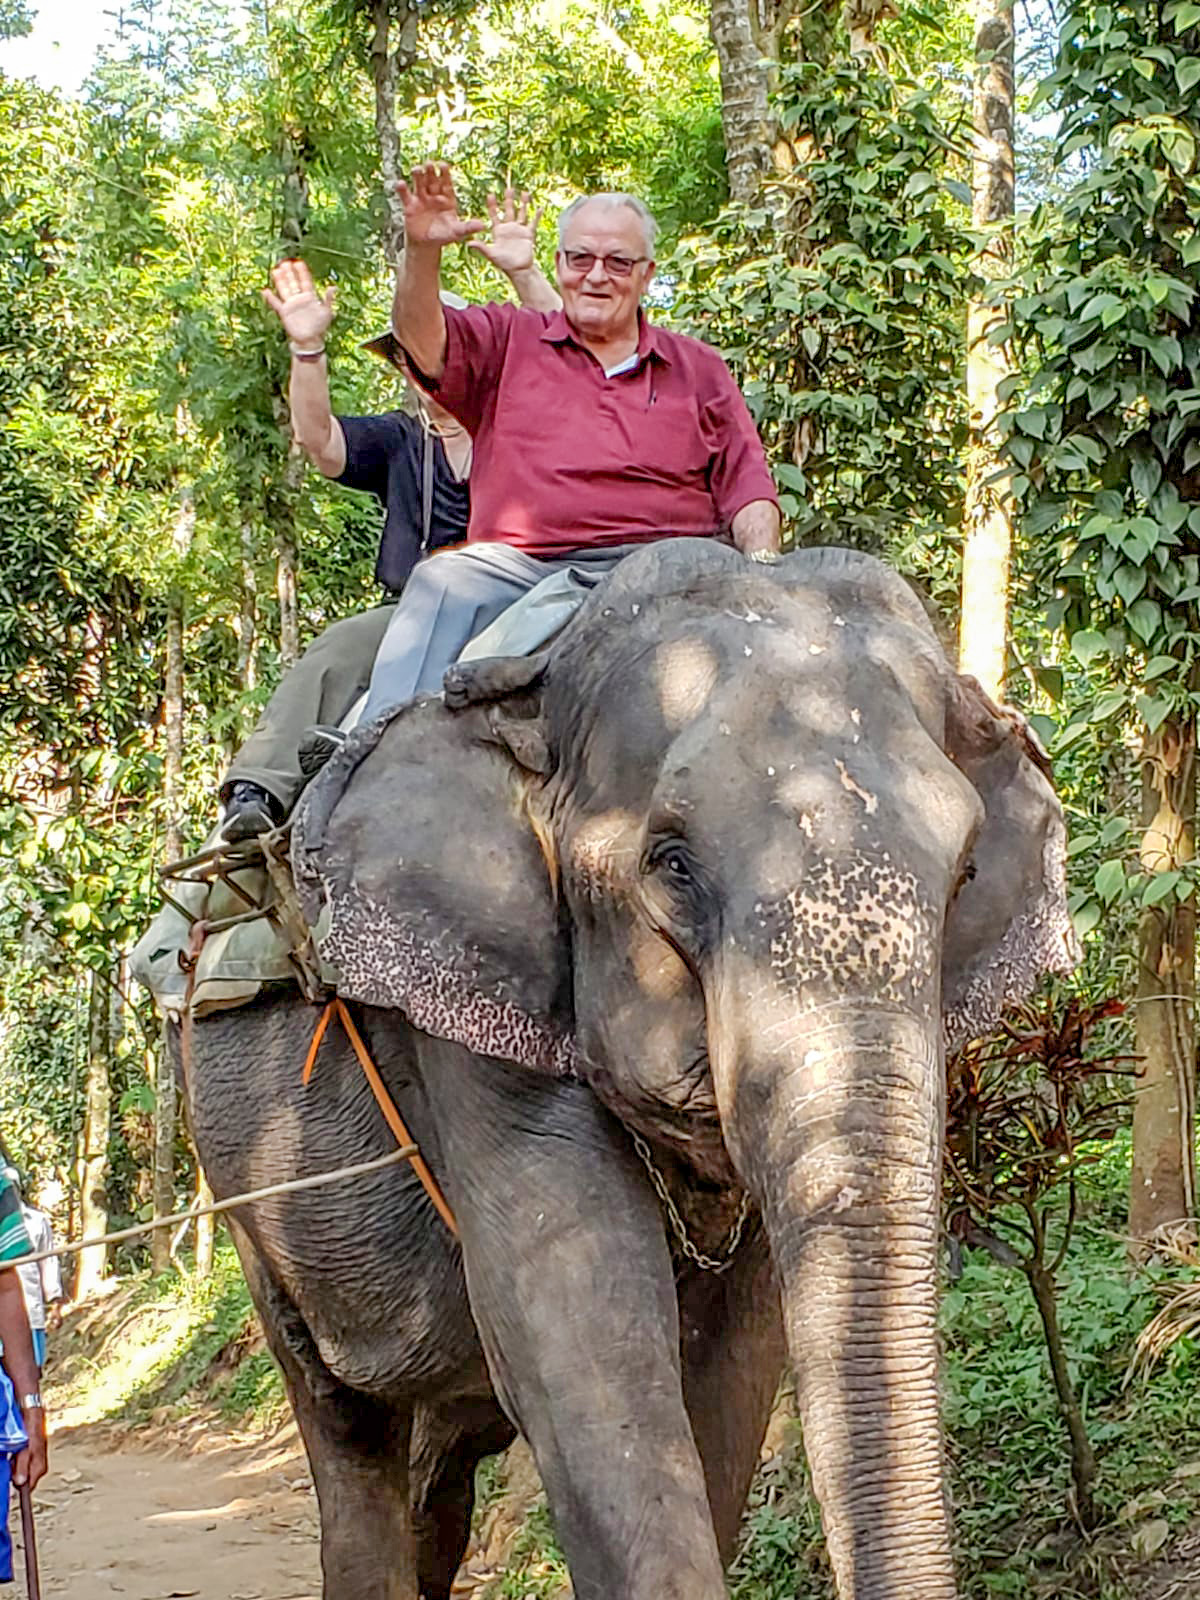 While in India, everyone in the group had an opportunity to ride an elephant. Pictured is George Wendinger of Fairfax during his ride.